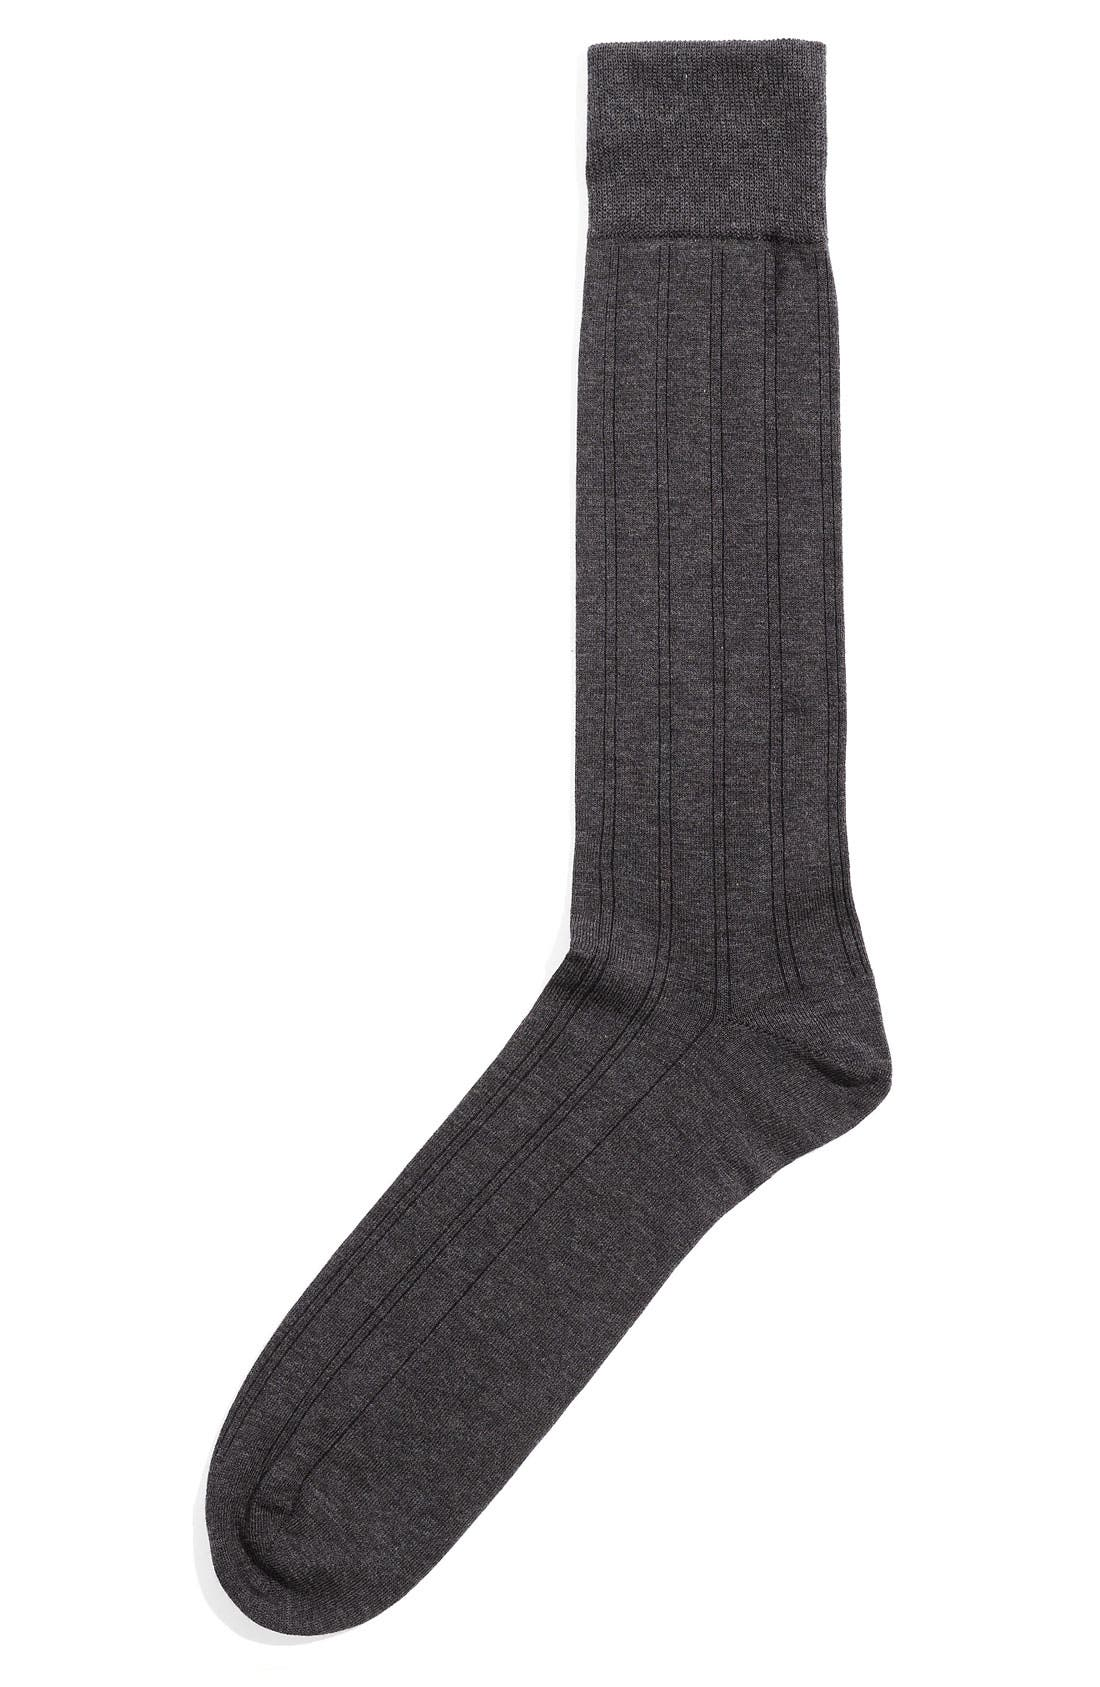 Main Image - Calibrate Pattern Dress Socks